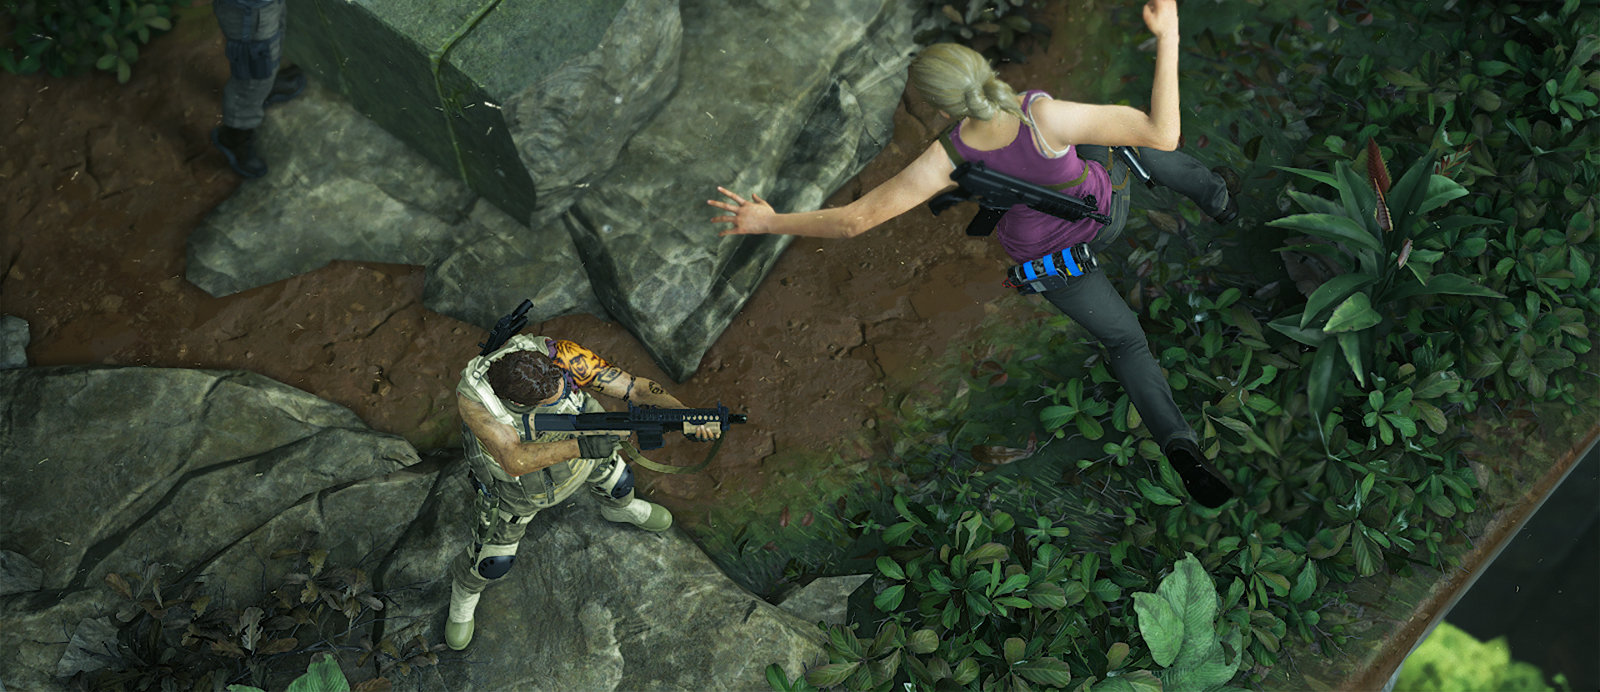 https://media.playstation.com/is/image/SCEA/uncharted-4-a-thiefs-end-multiplayer-page-section-01-ps4-us-27oct15?$BackgroundFeature_Large$